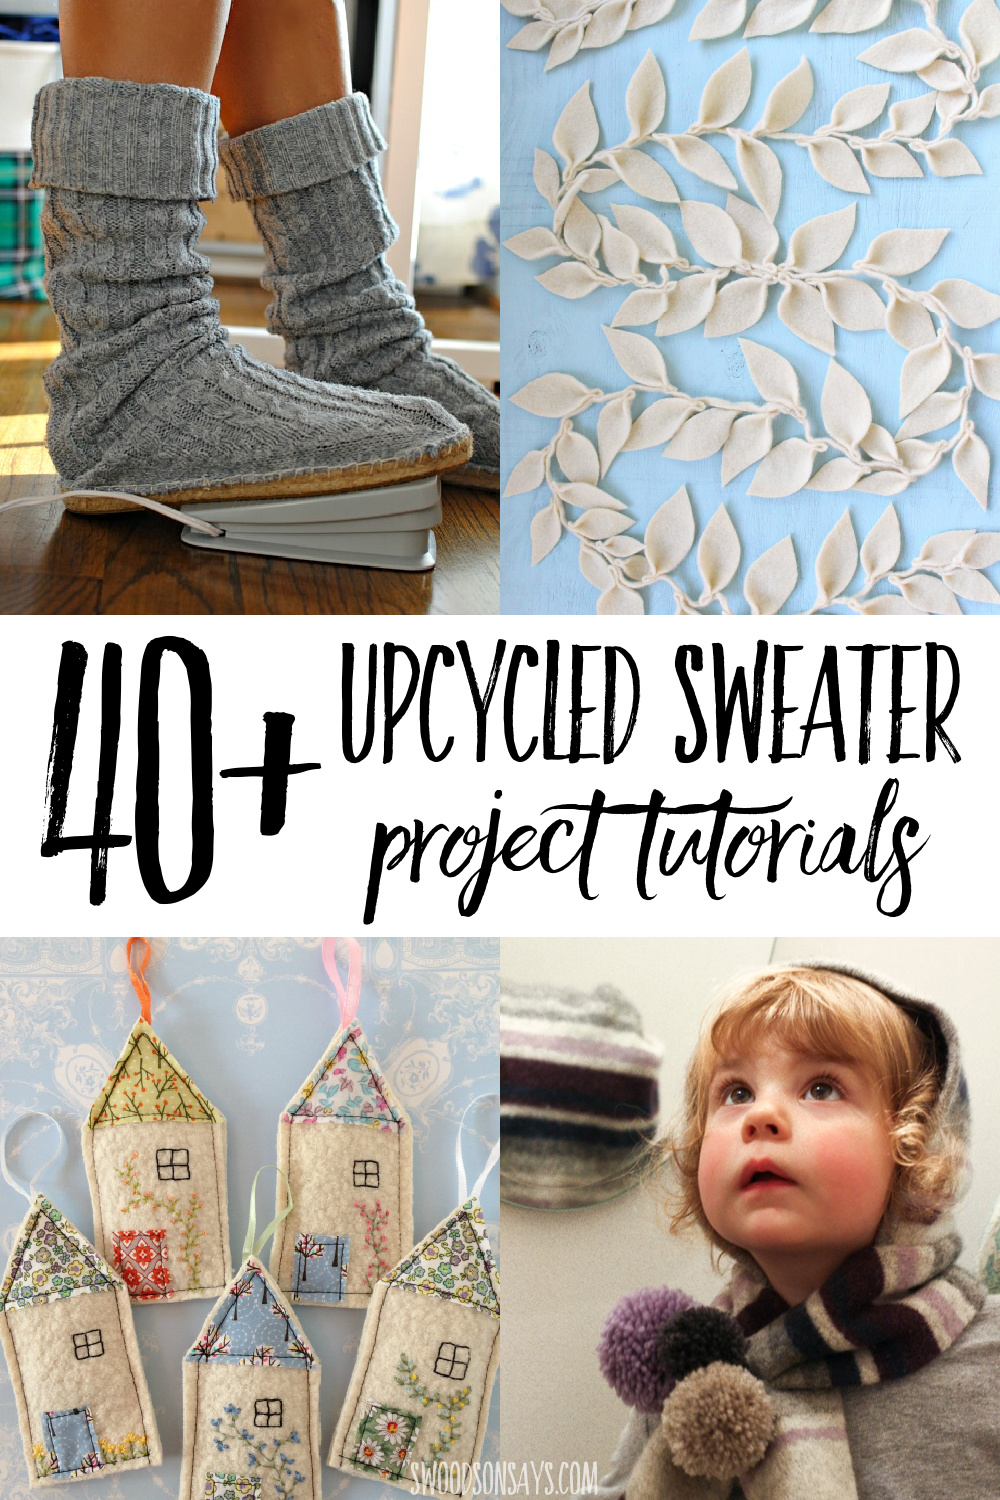 upcycled sweater tutorials